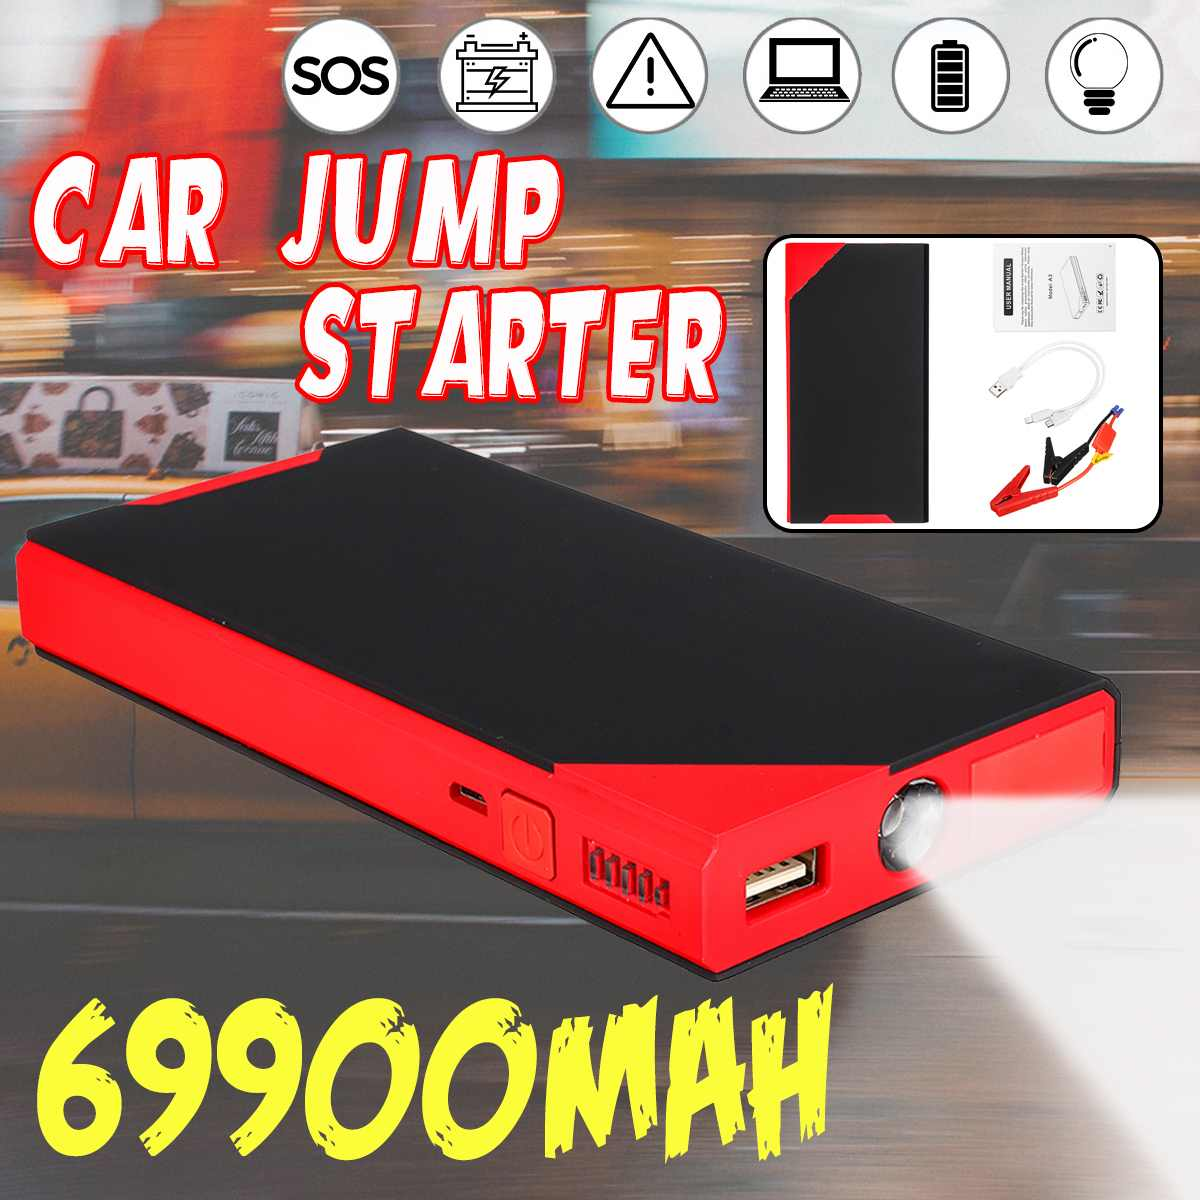 Multifunction 69900mAh Car Jump Starter Power Bank 12V USB LED Portable Emergency Car Battery Booster Charger Starting Device